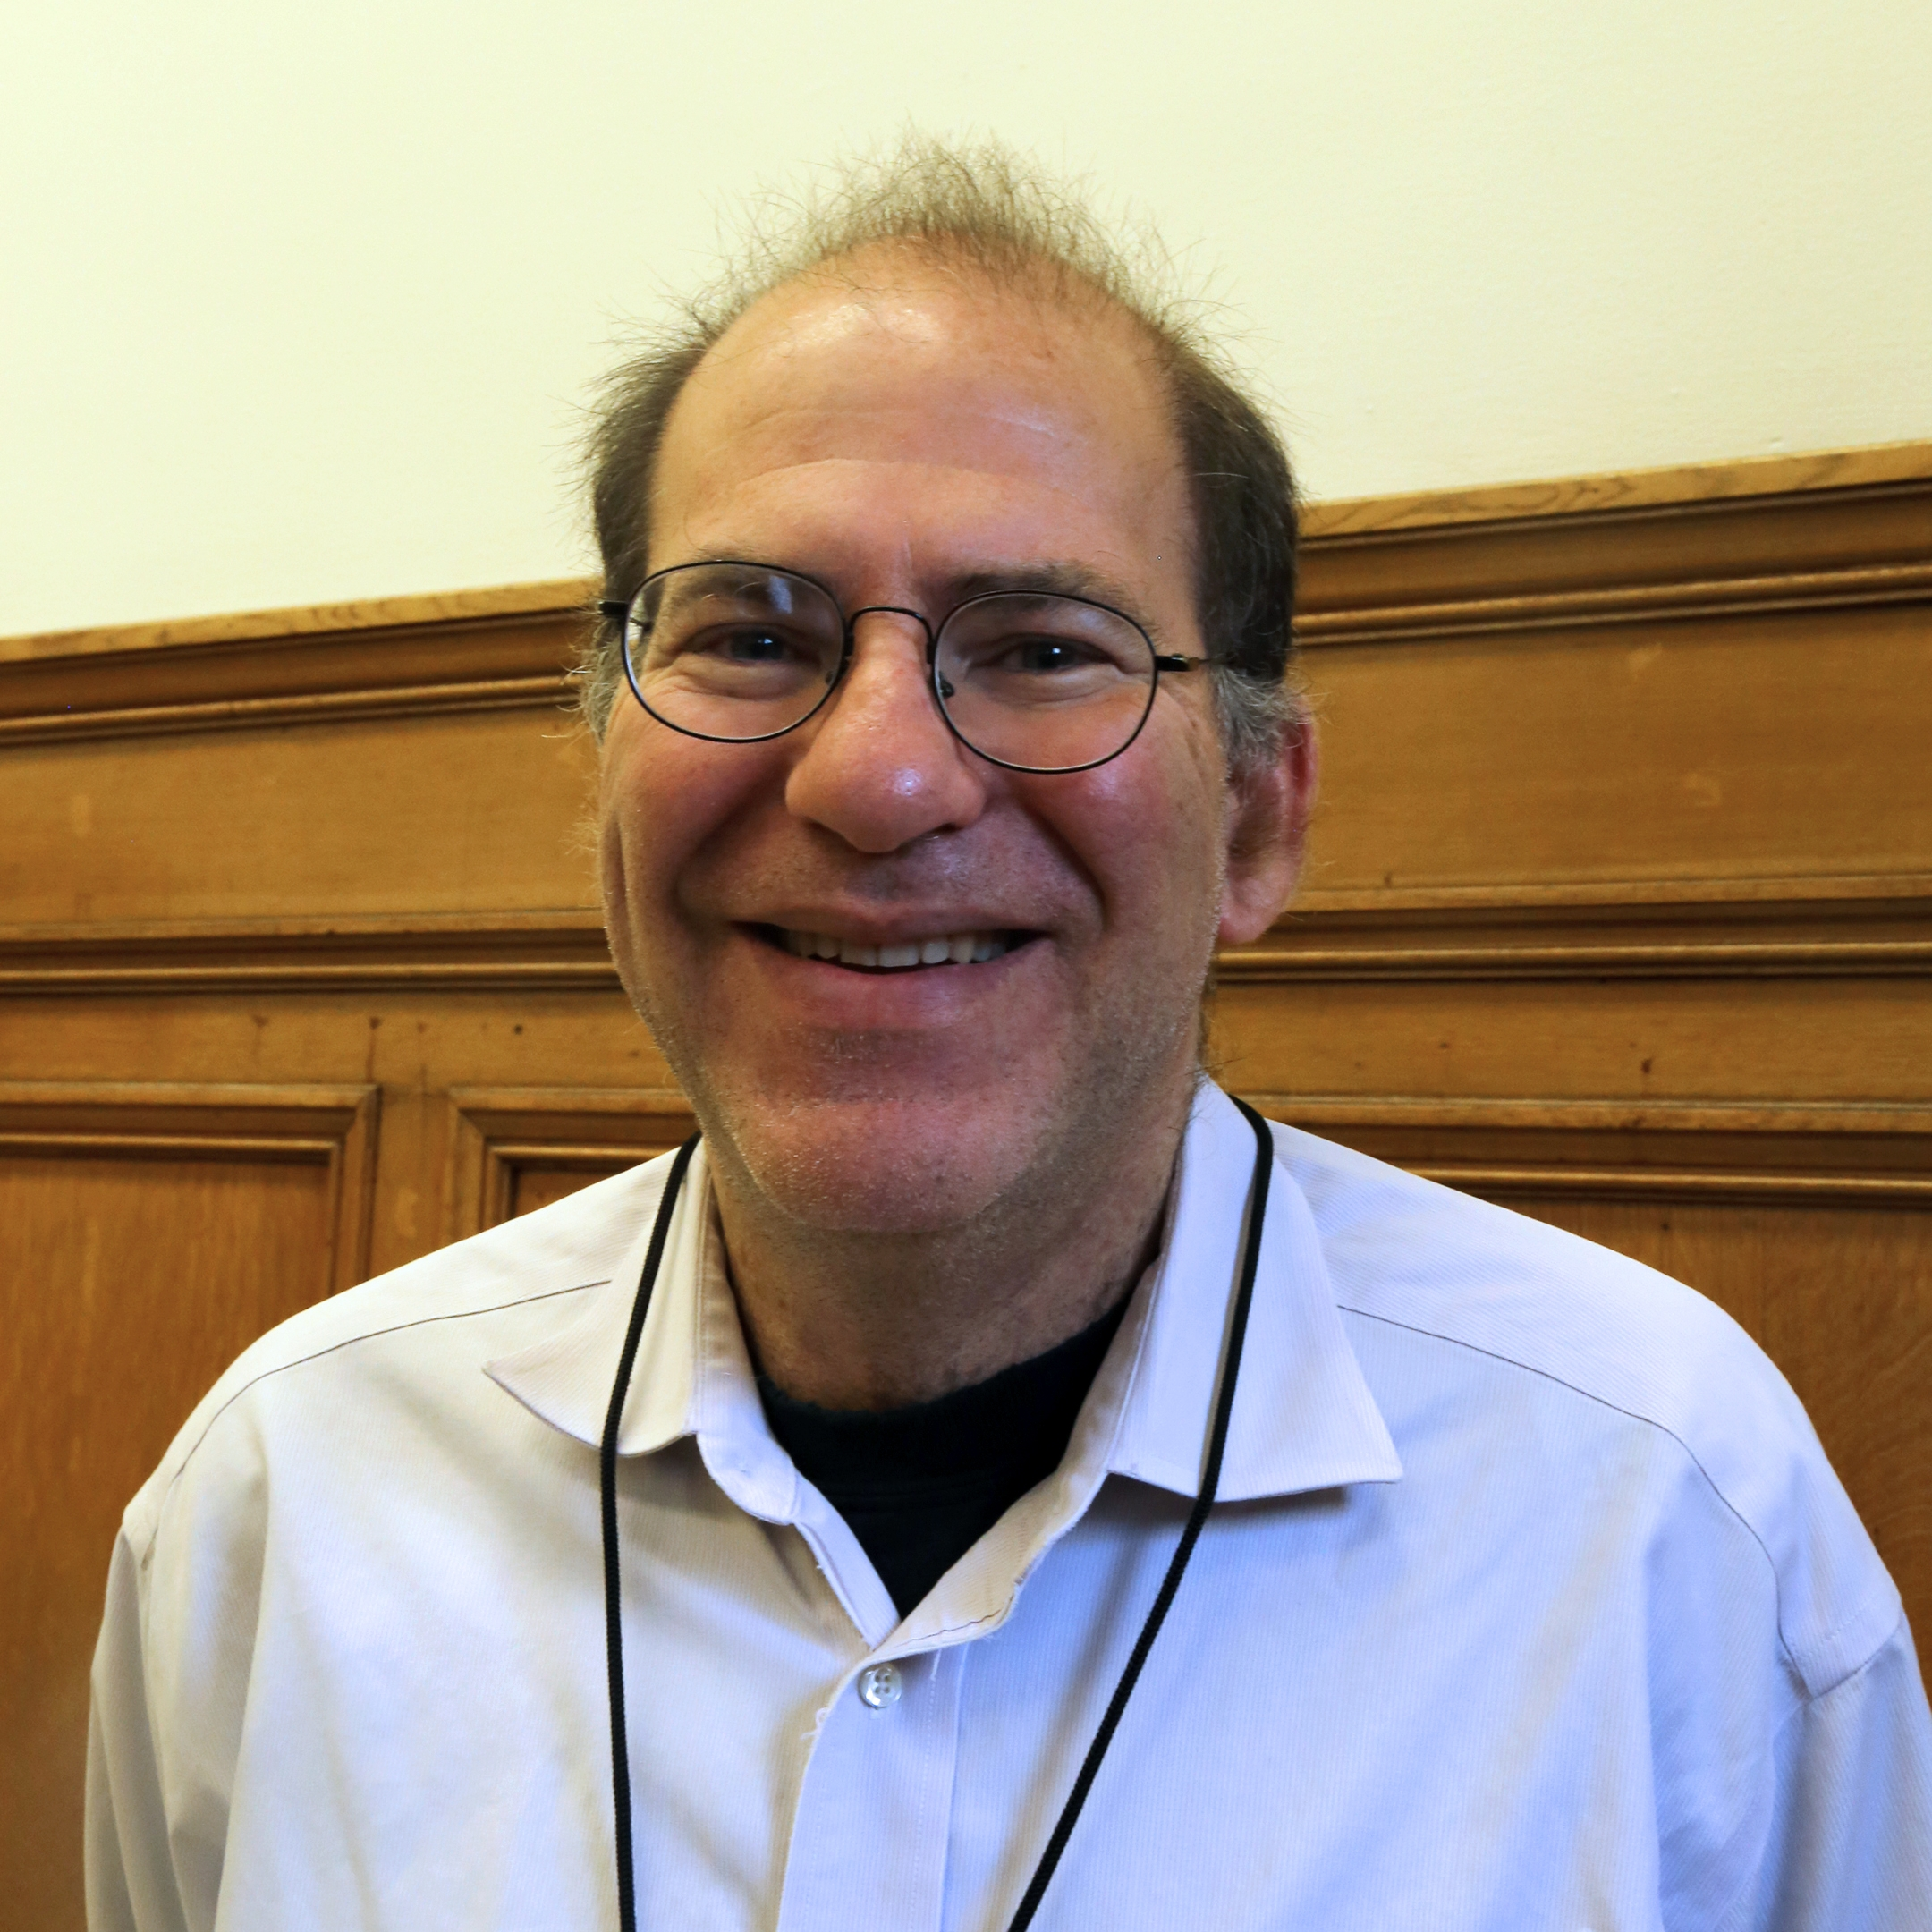 Barry Zevin, MD - Medical director of Street Medicine and Shelter Health, SF Department of Public Health.